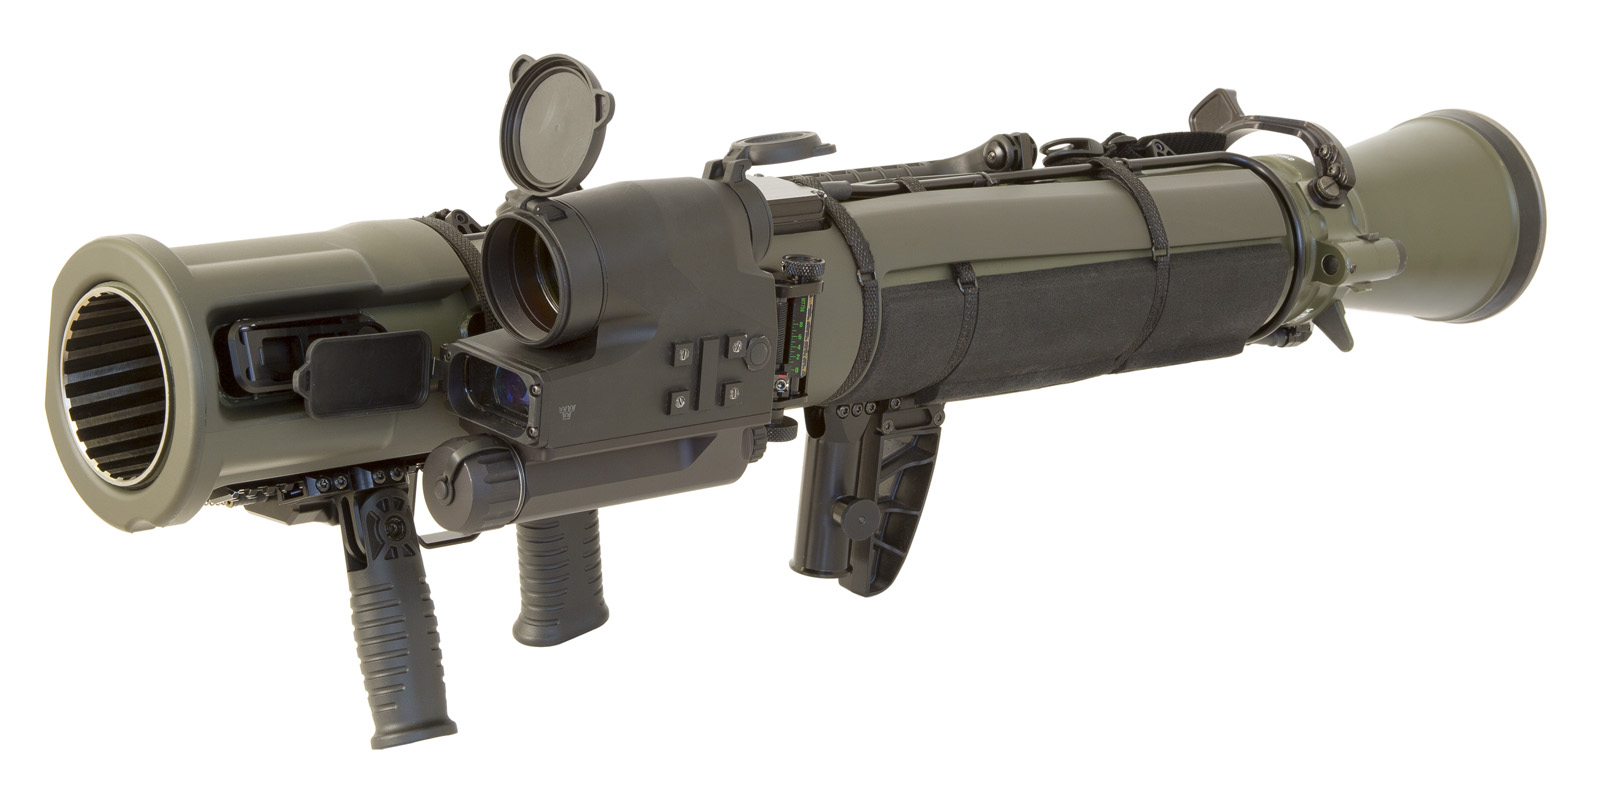 hight resolution of the m3e1 is an updated m3 by using titanium the weapon system is six pounds lighter 2 5 inches shorter and has an improved carrying handle